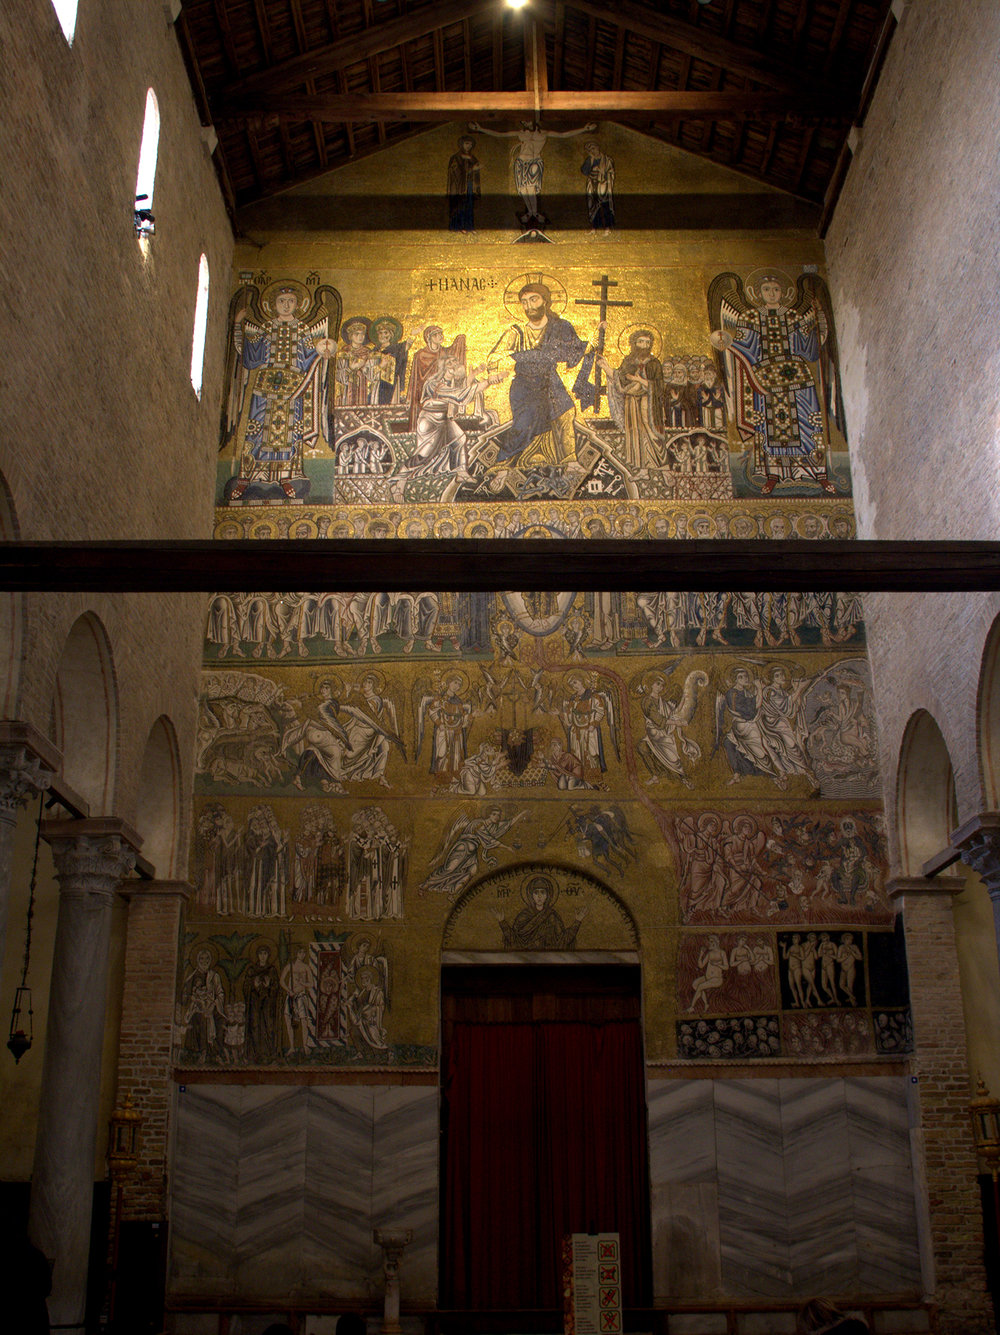 Figure 4: The Last Judgment is depicted in this eleventh-century mosaic on the west wall of the basilica church of Santa Maria Assunta at Torcello, Italy. Photo © User: Ismoon / Wikimedia Commons / CC-BY-SA-3.0.